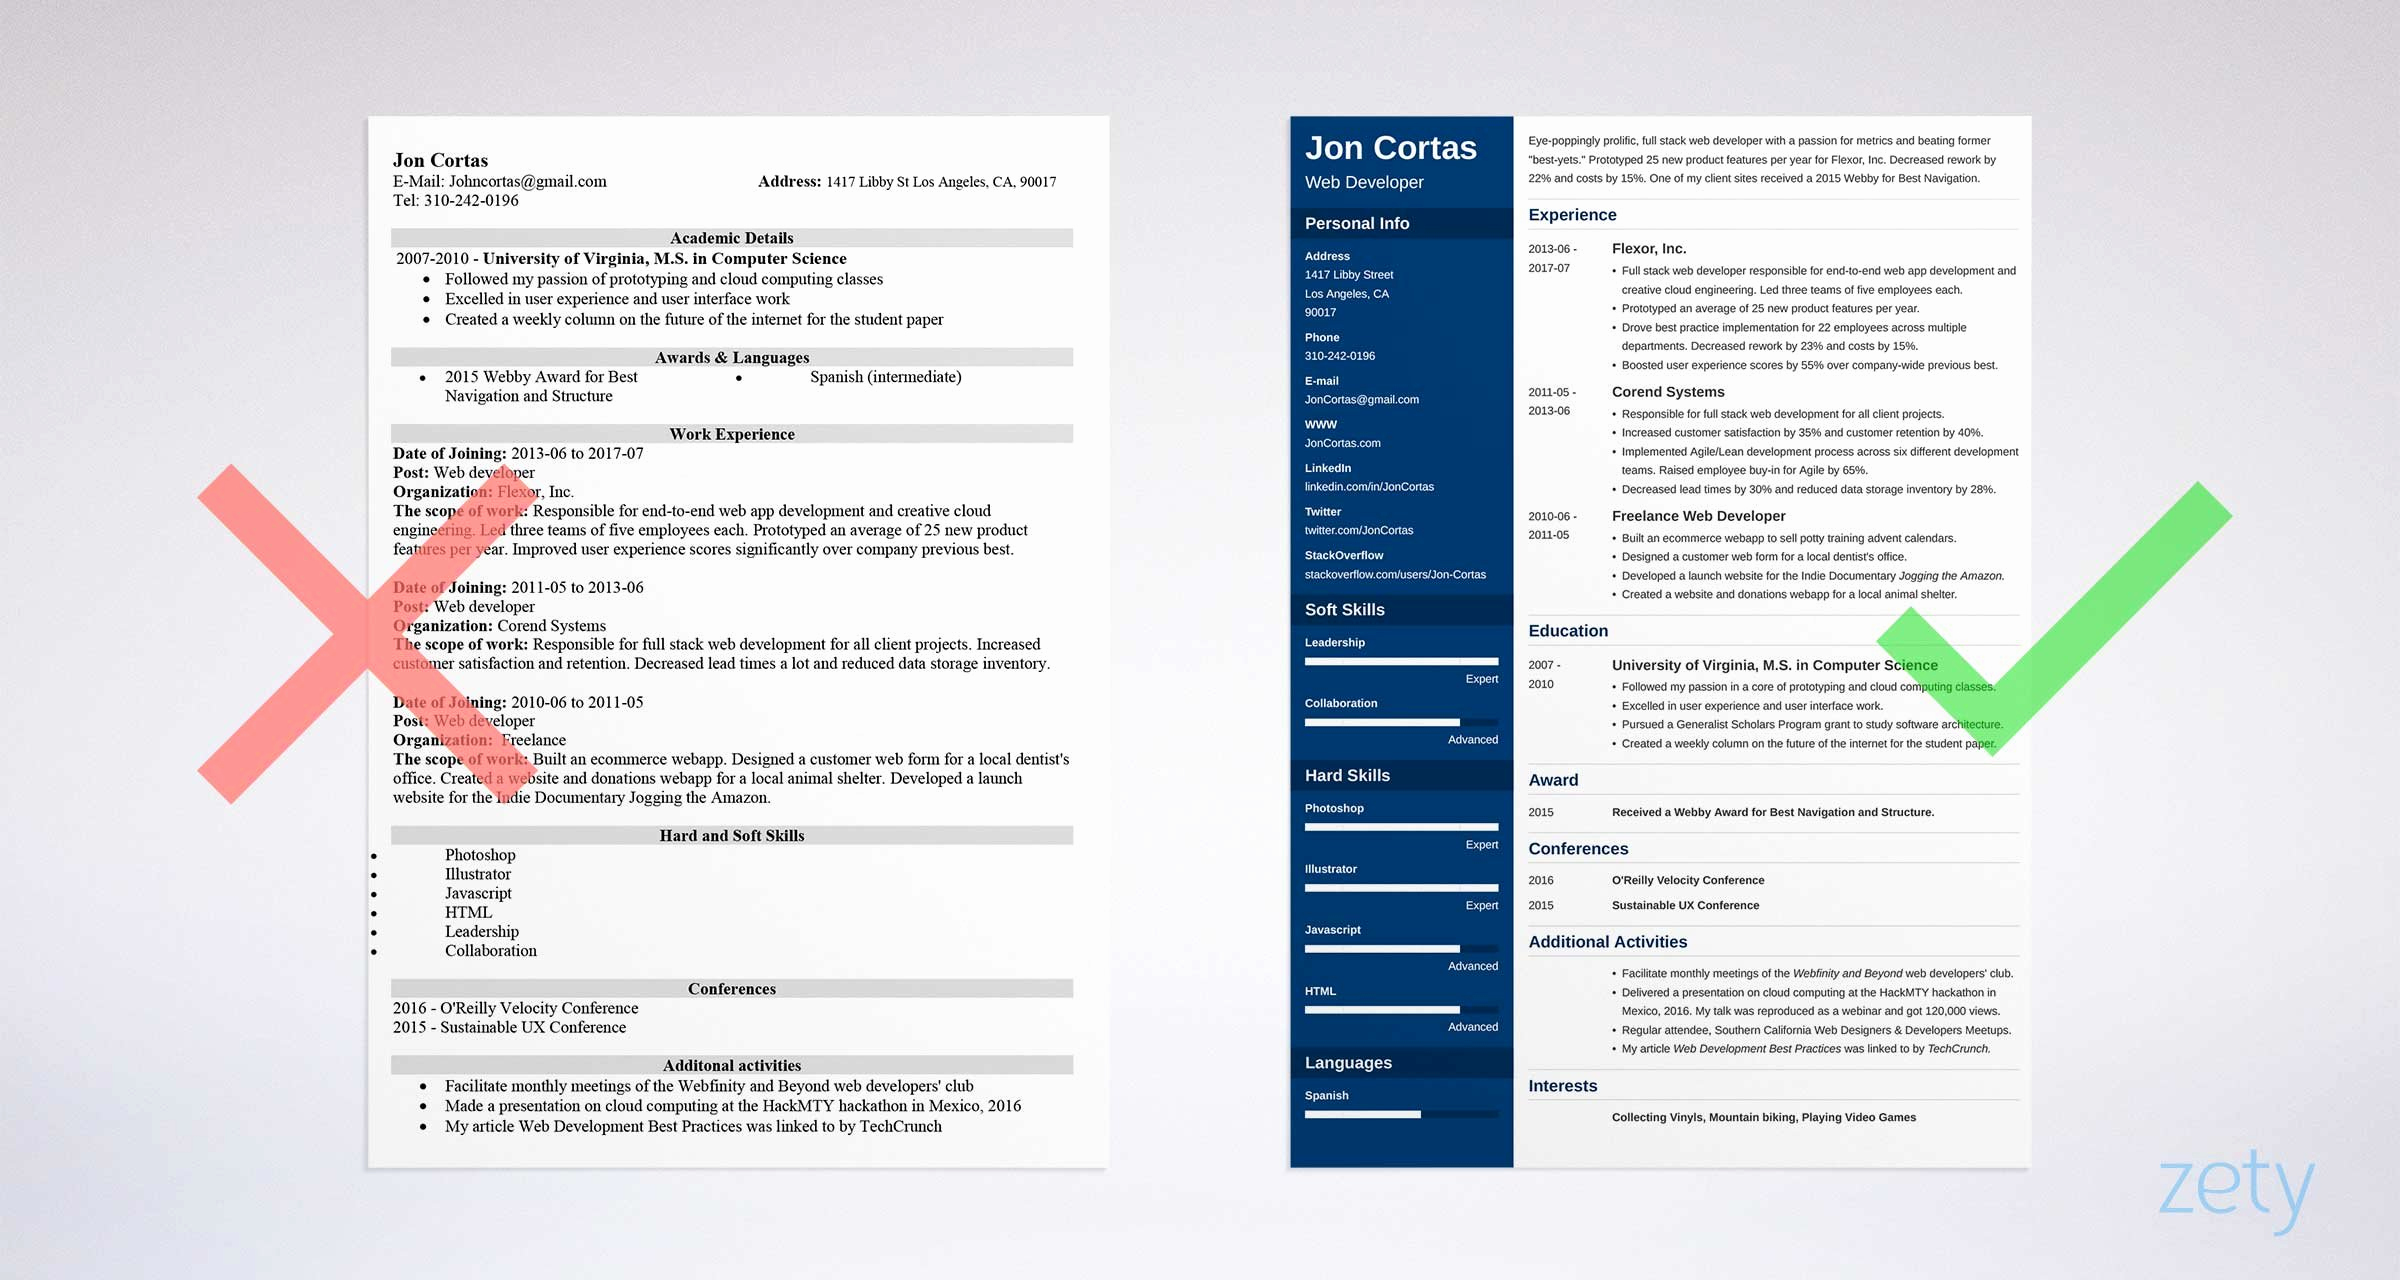 Free Cv Template Word Awesome Free Resume Templates for Word 15 Cv Resume formats to